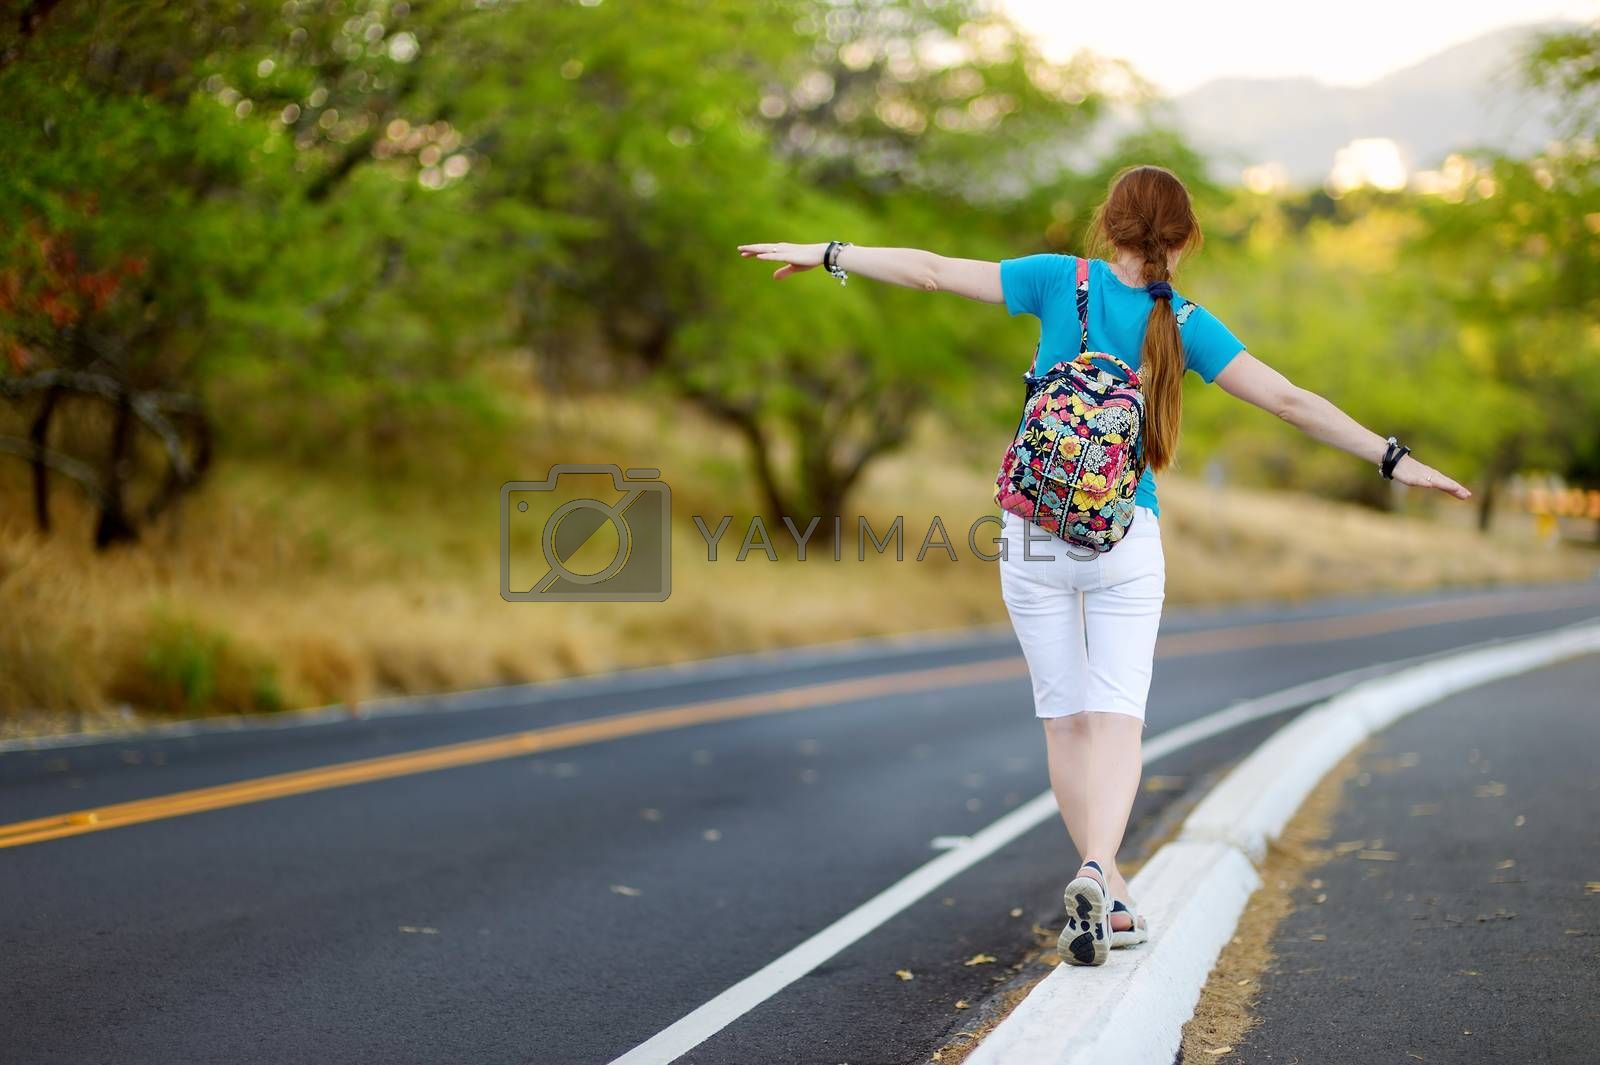 Royalty free image of Young tourist hitchhiking along a road by maximkabb